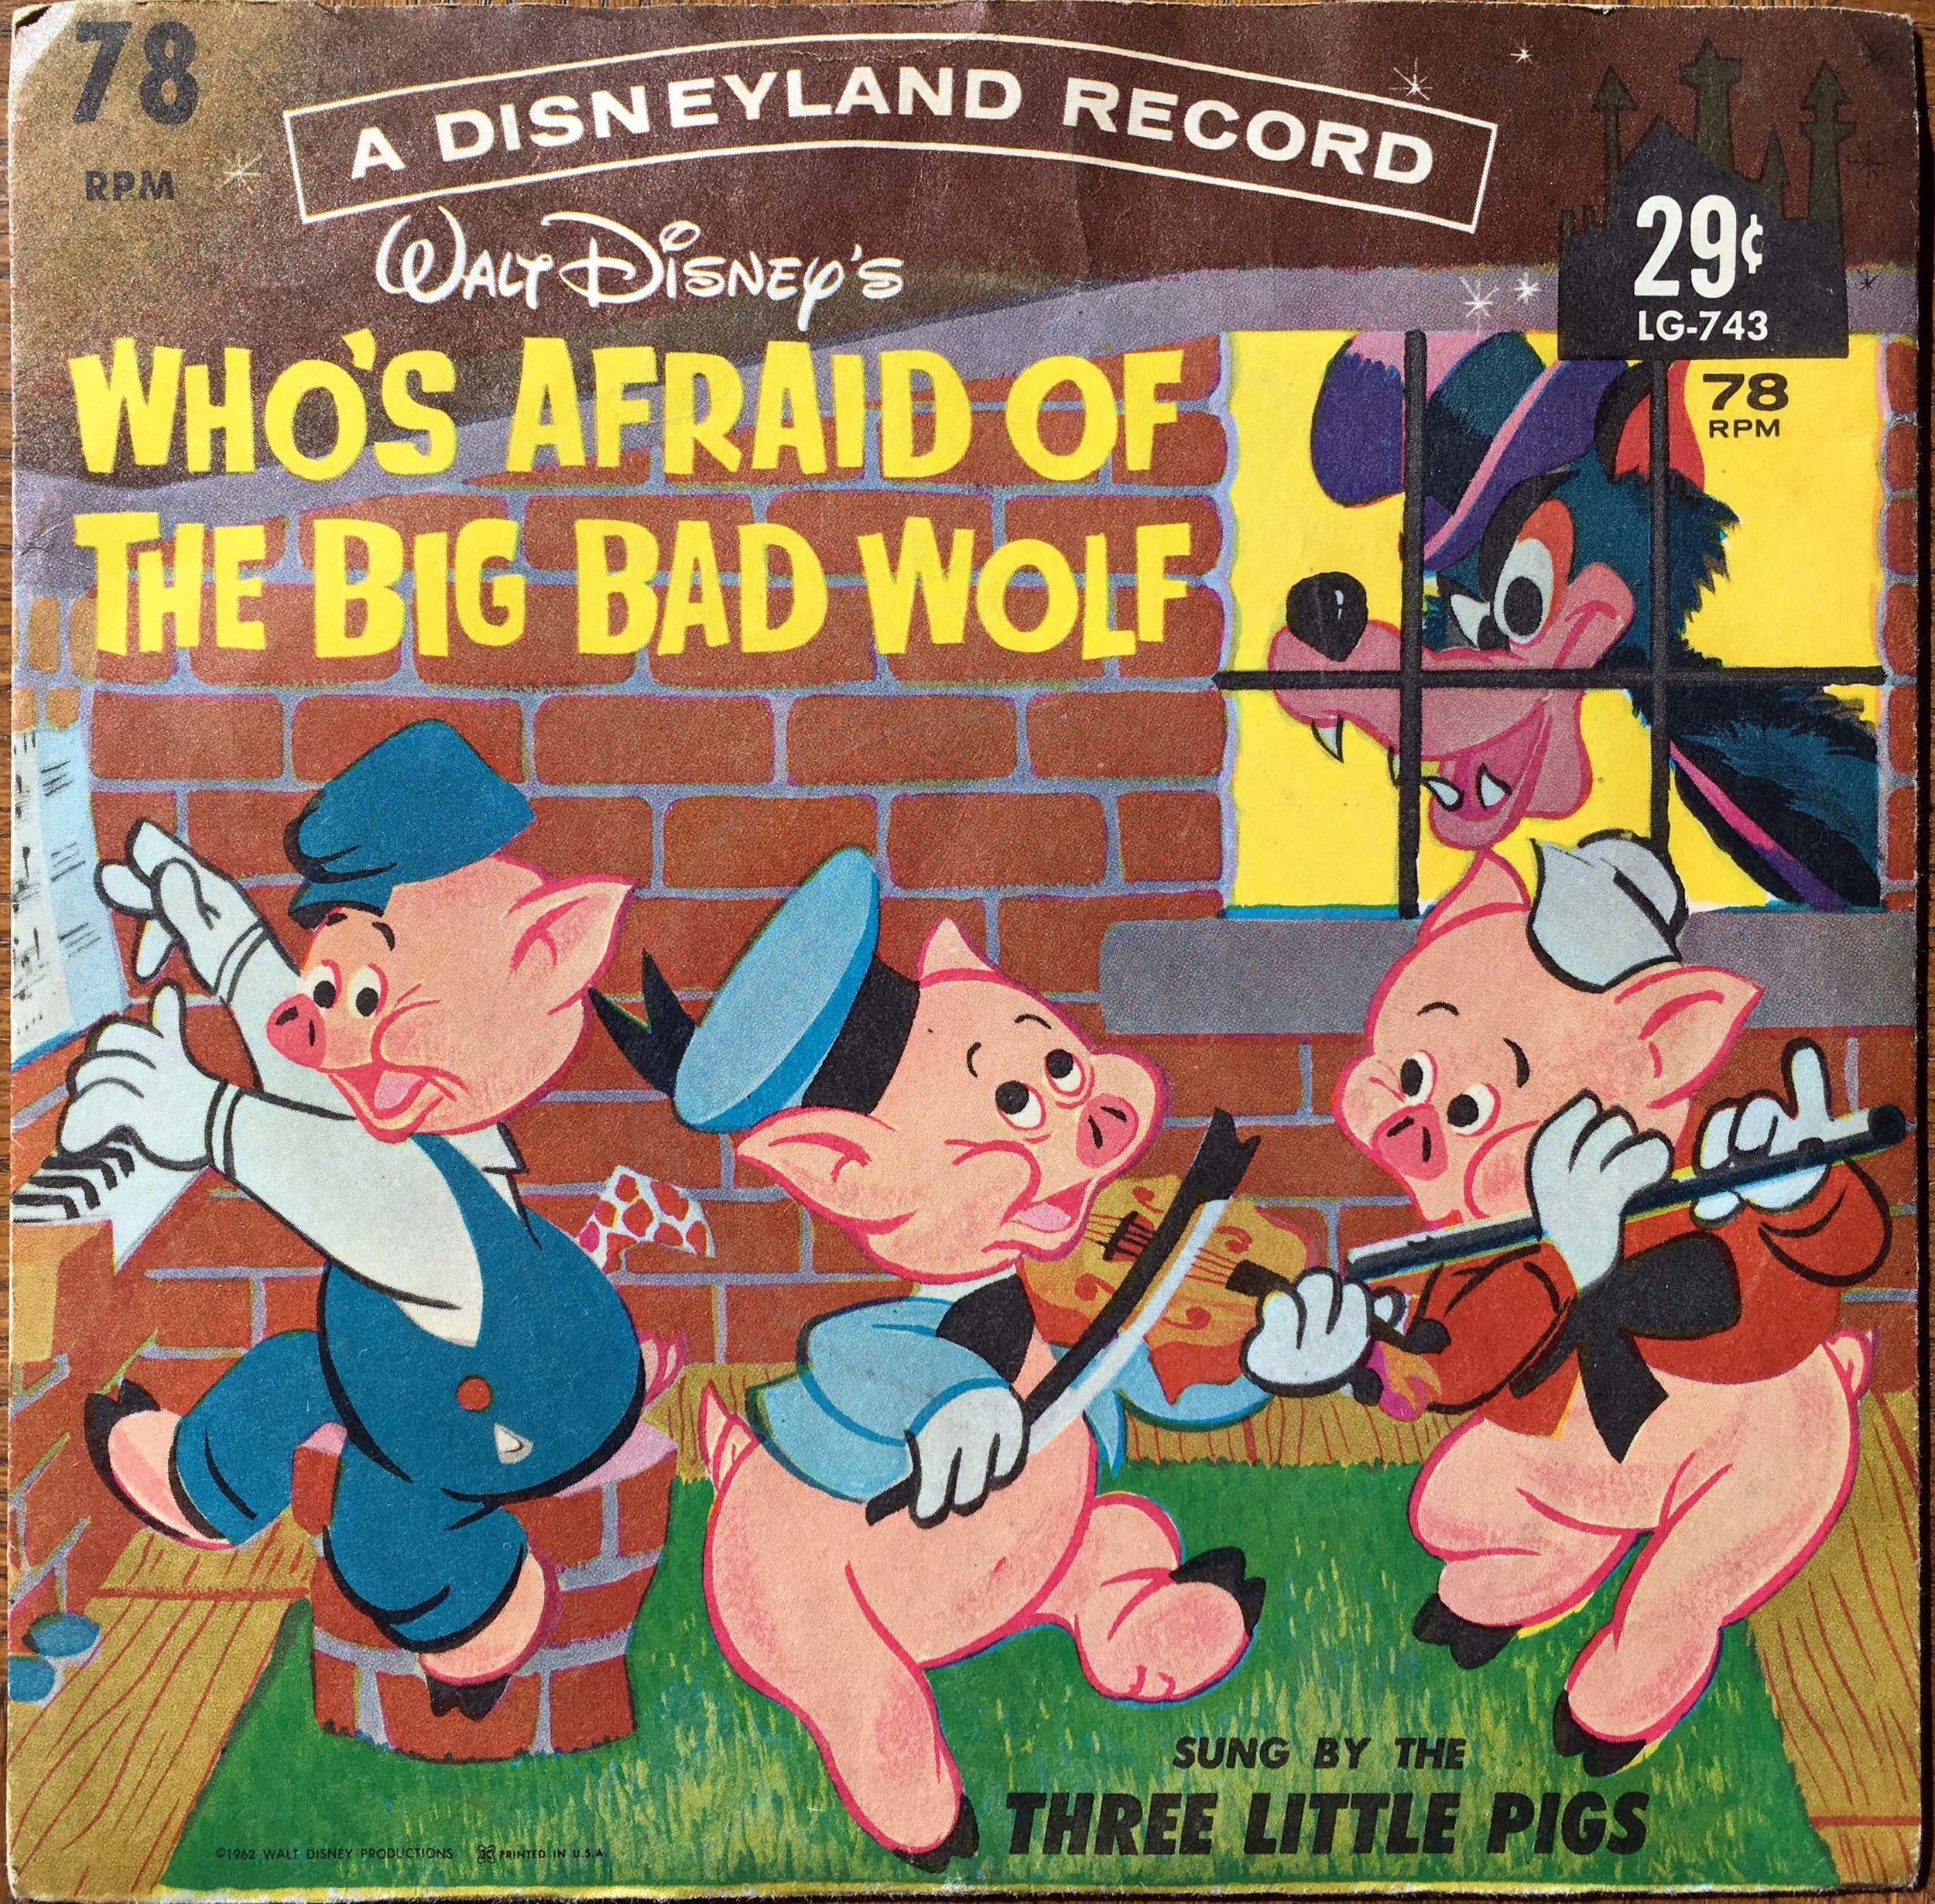 WHO'S AFRAID OF THE BIG BAD WOLF